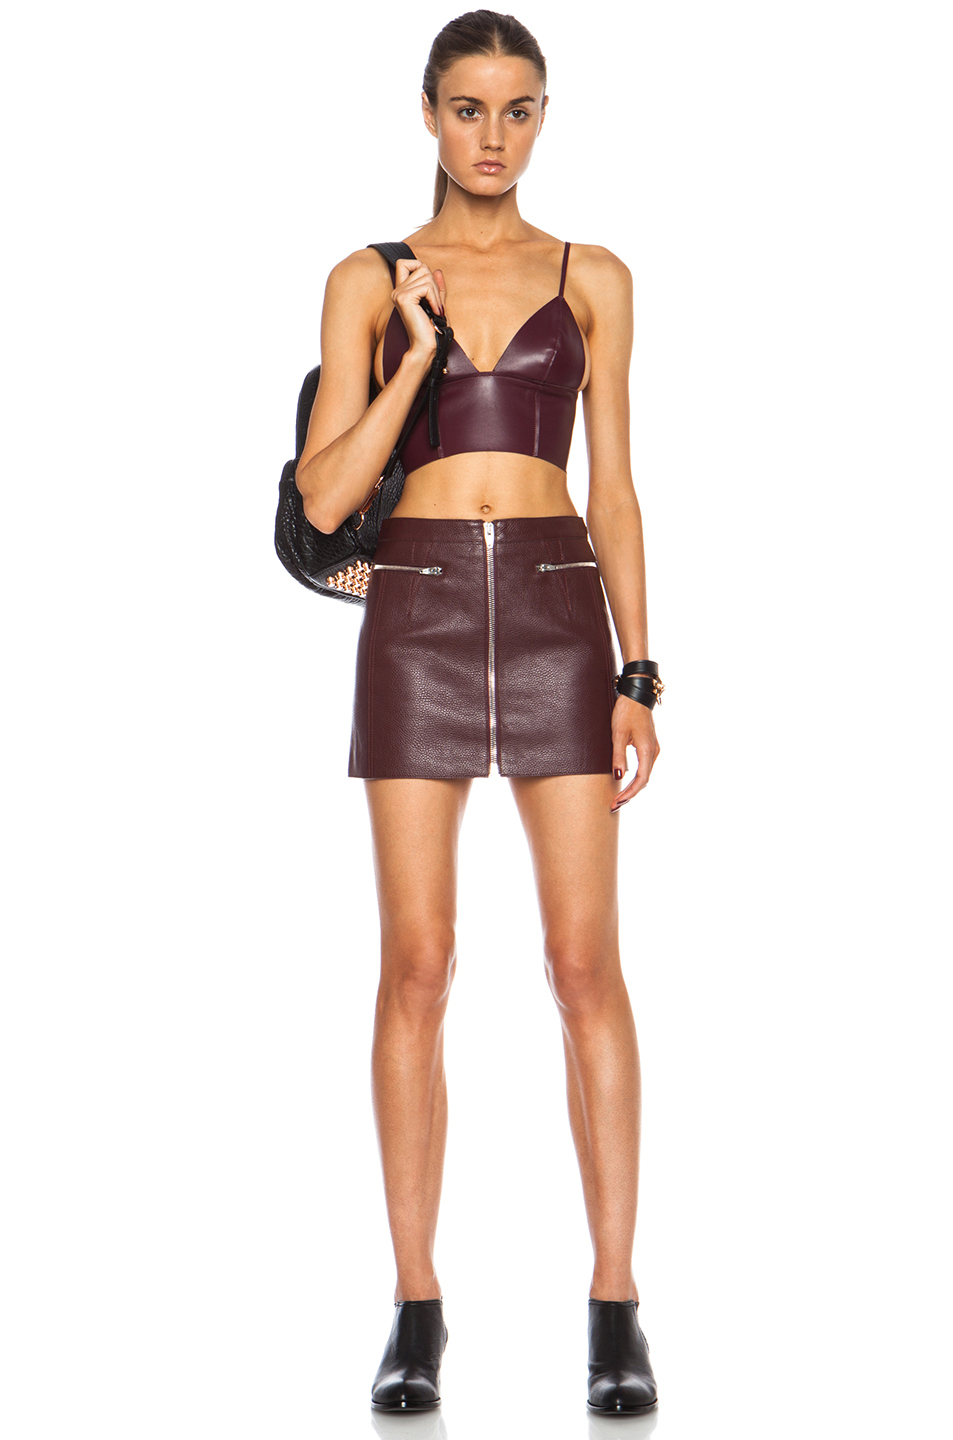 372c1afe5daf0 Lyst - T By Alexander Wang Bonded Nappa Raw Edge Triangle Bralette ...